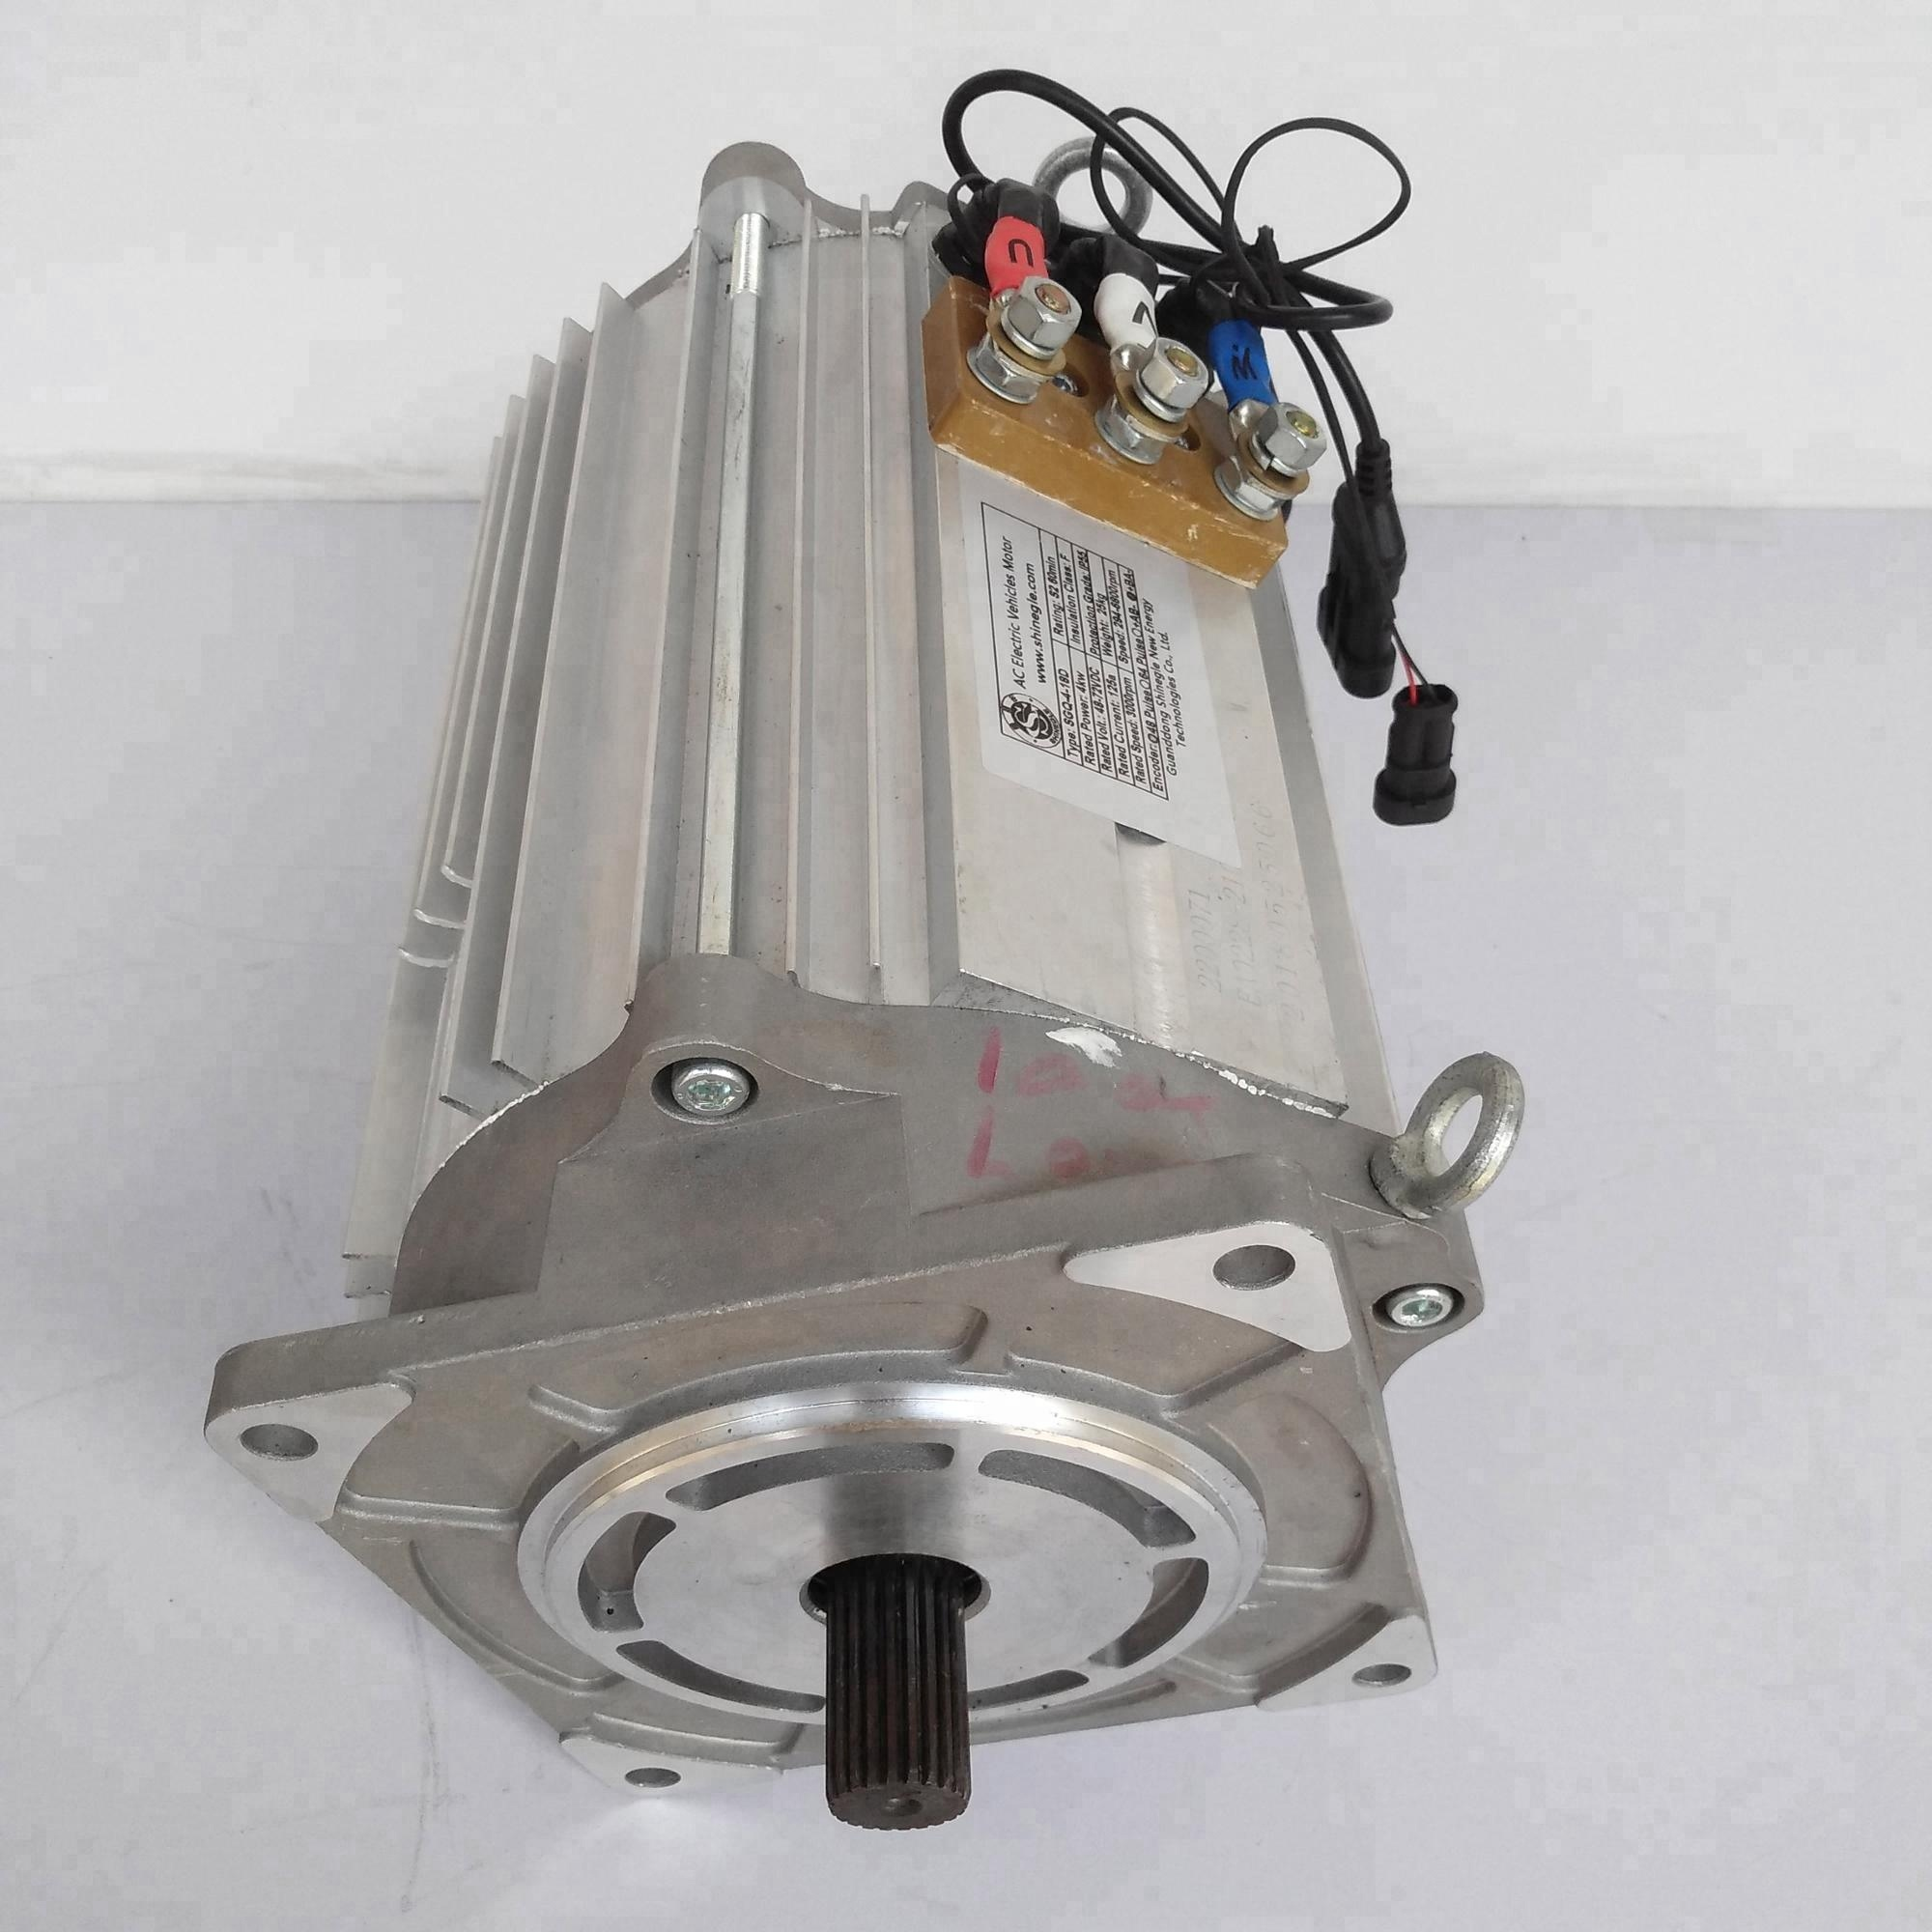 Induction Motor 7.5kw Tesla Motors Electric Car AC Motor And Controller Ev Conversion Kit For Car